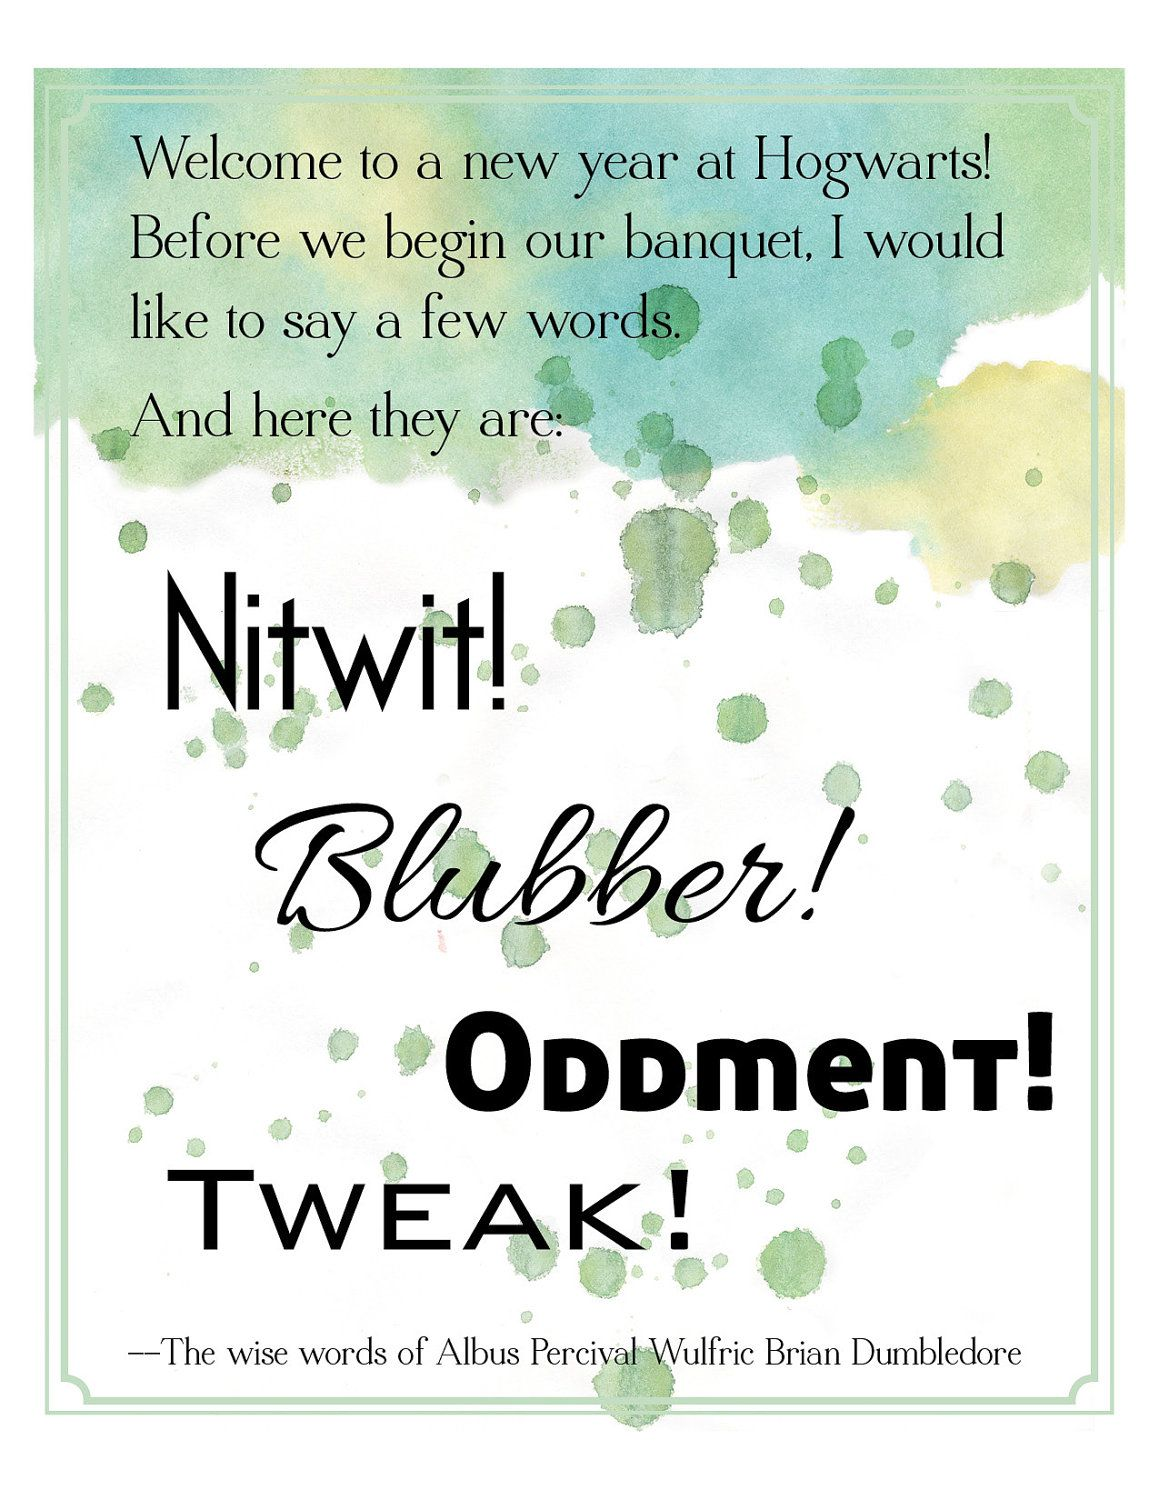 welcome to a new year at hogwarts before we begin our banquet i would like to say a few words and here they are nitwit blubber oddment tweak